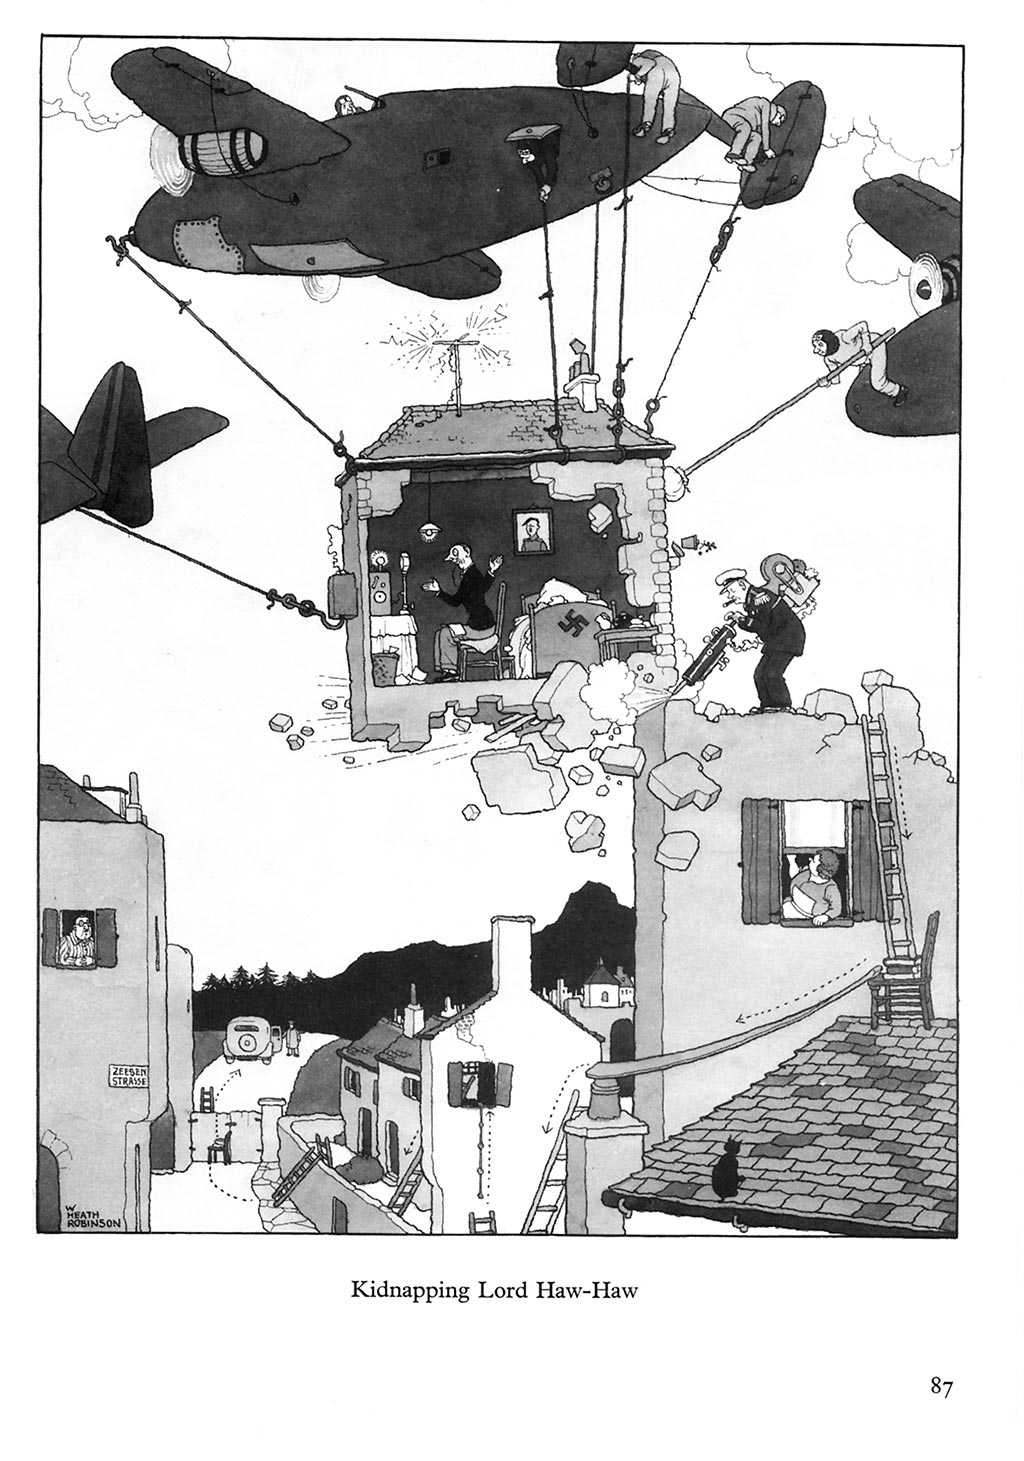 william_heath_robinson_inventions_-_page_087